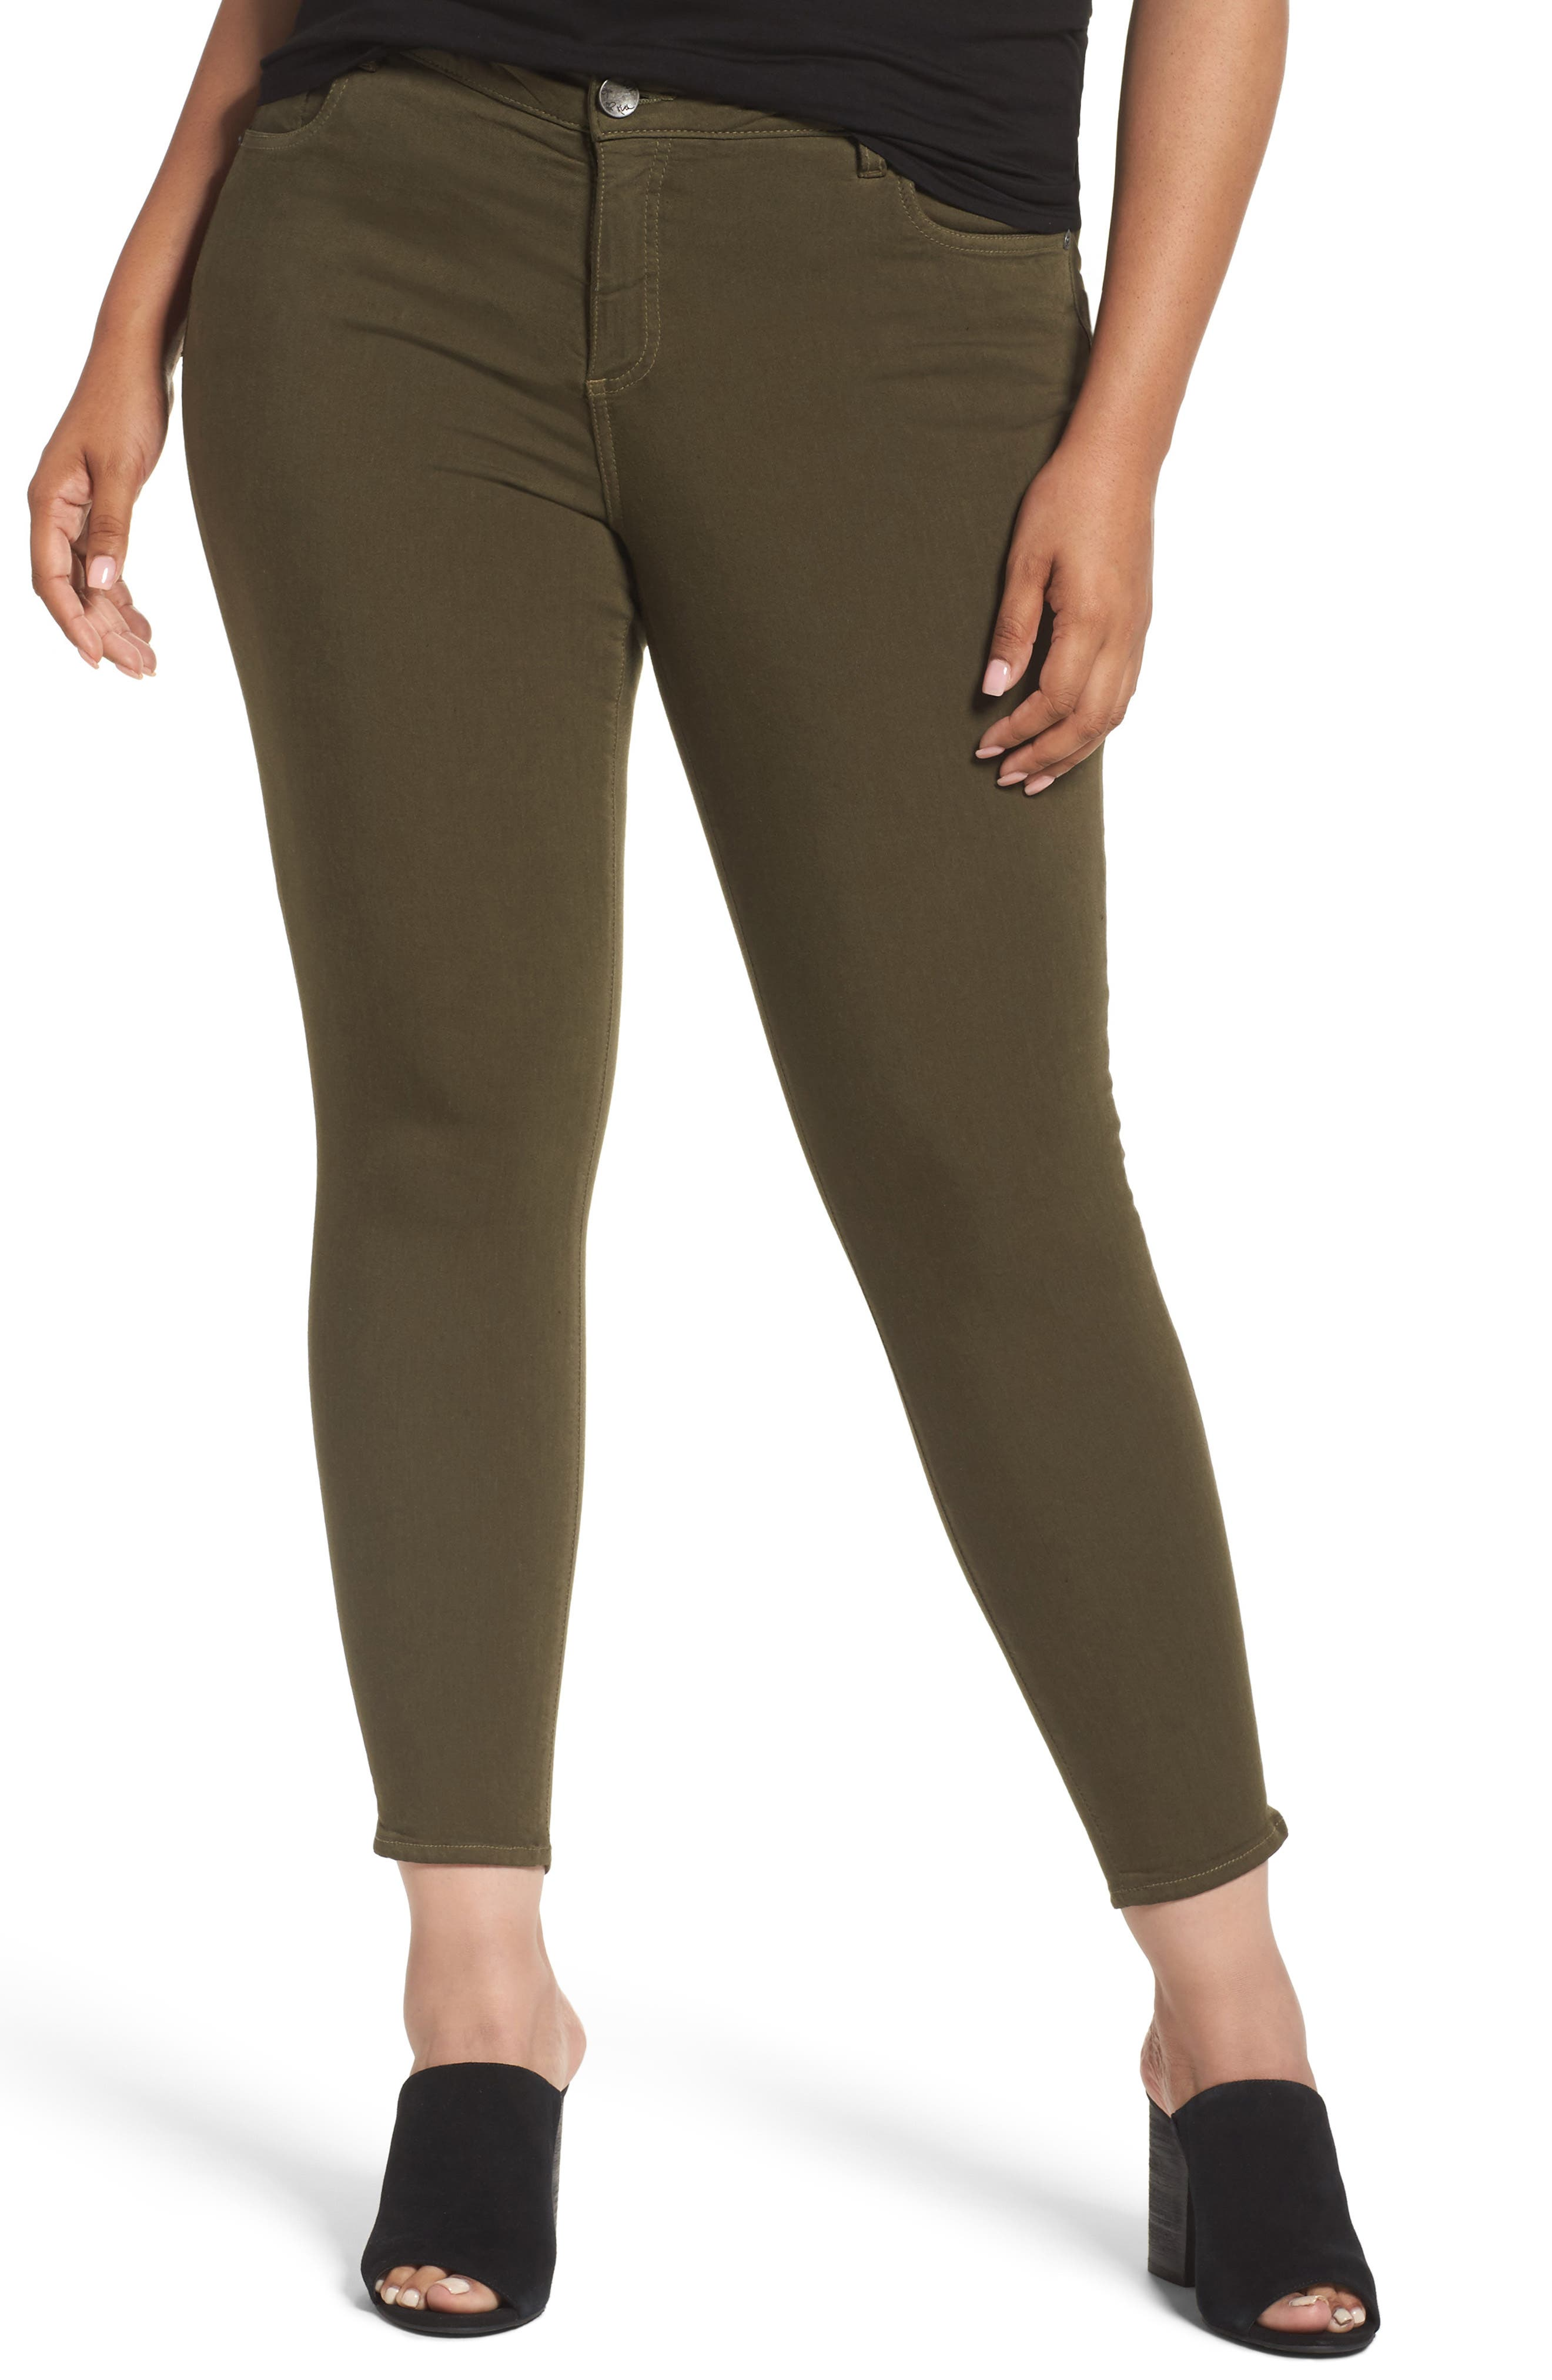 Plus Size Kut From The Kloth Donna Colored Stretch Skinny Jeans, Green